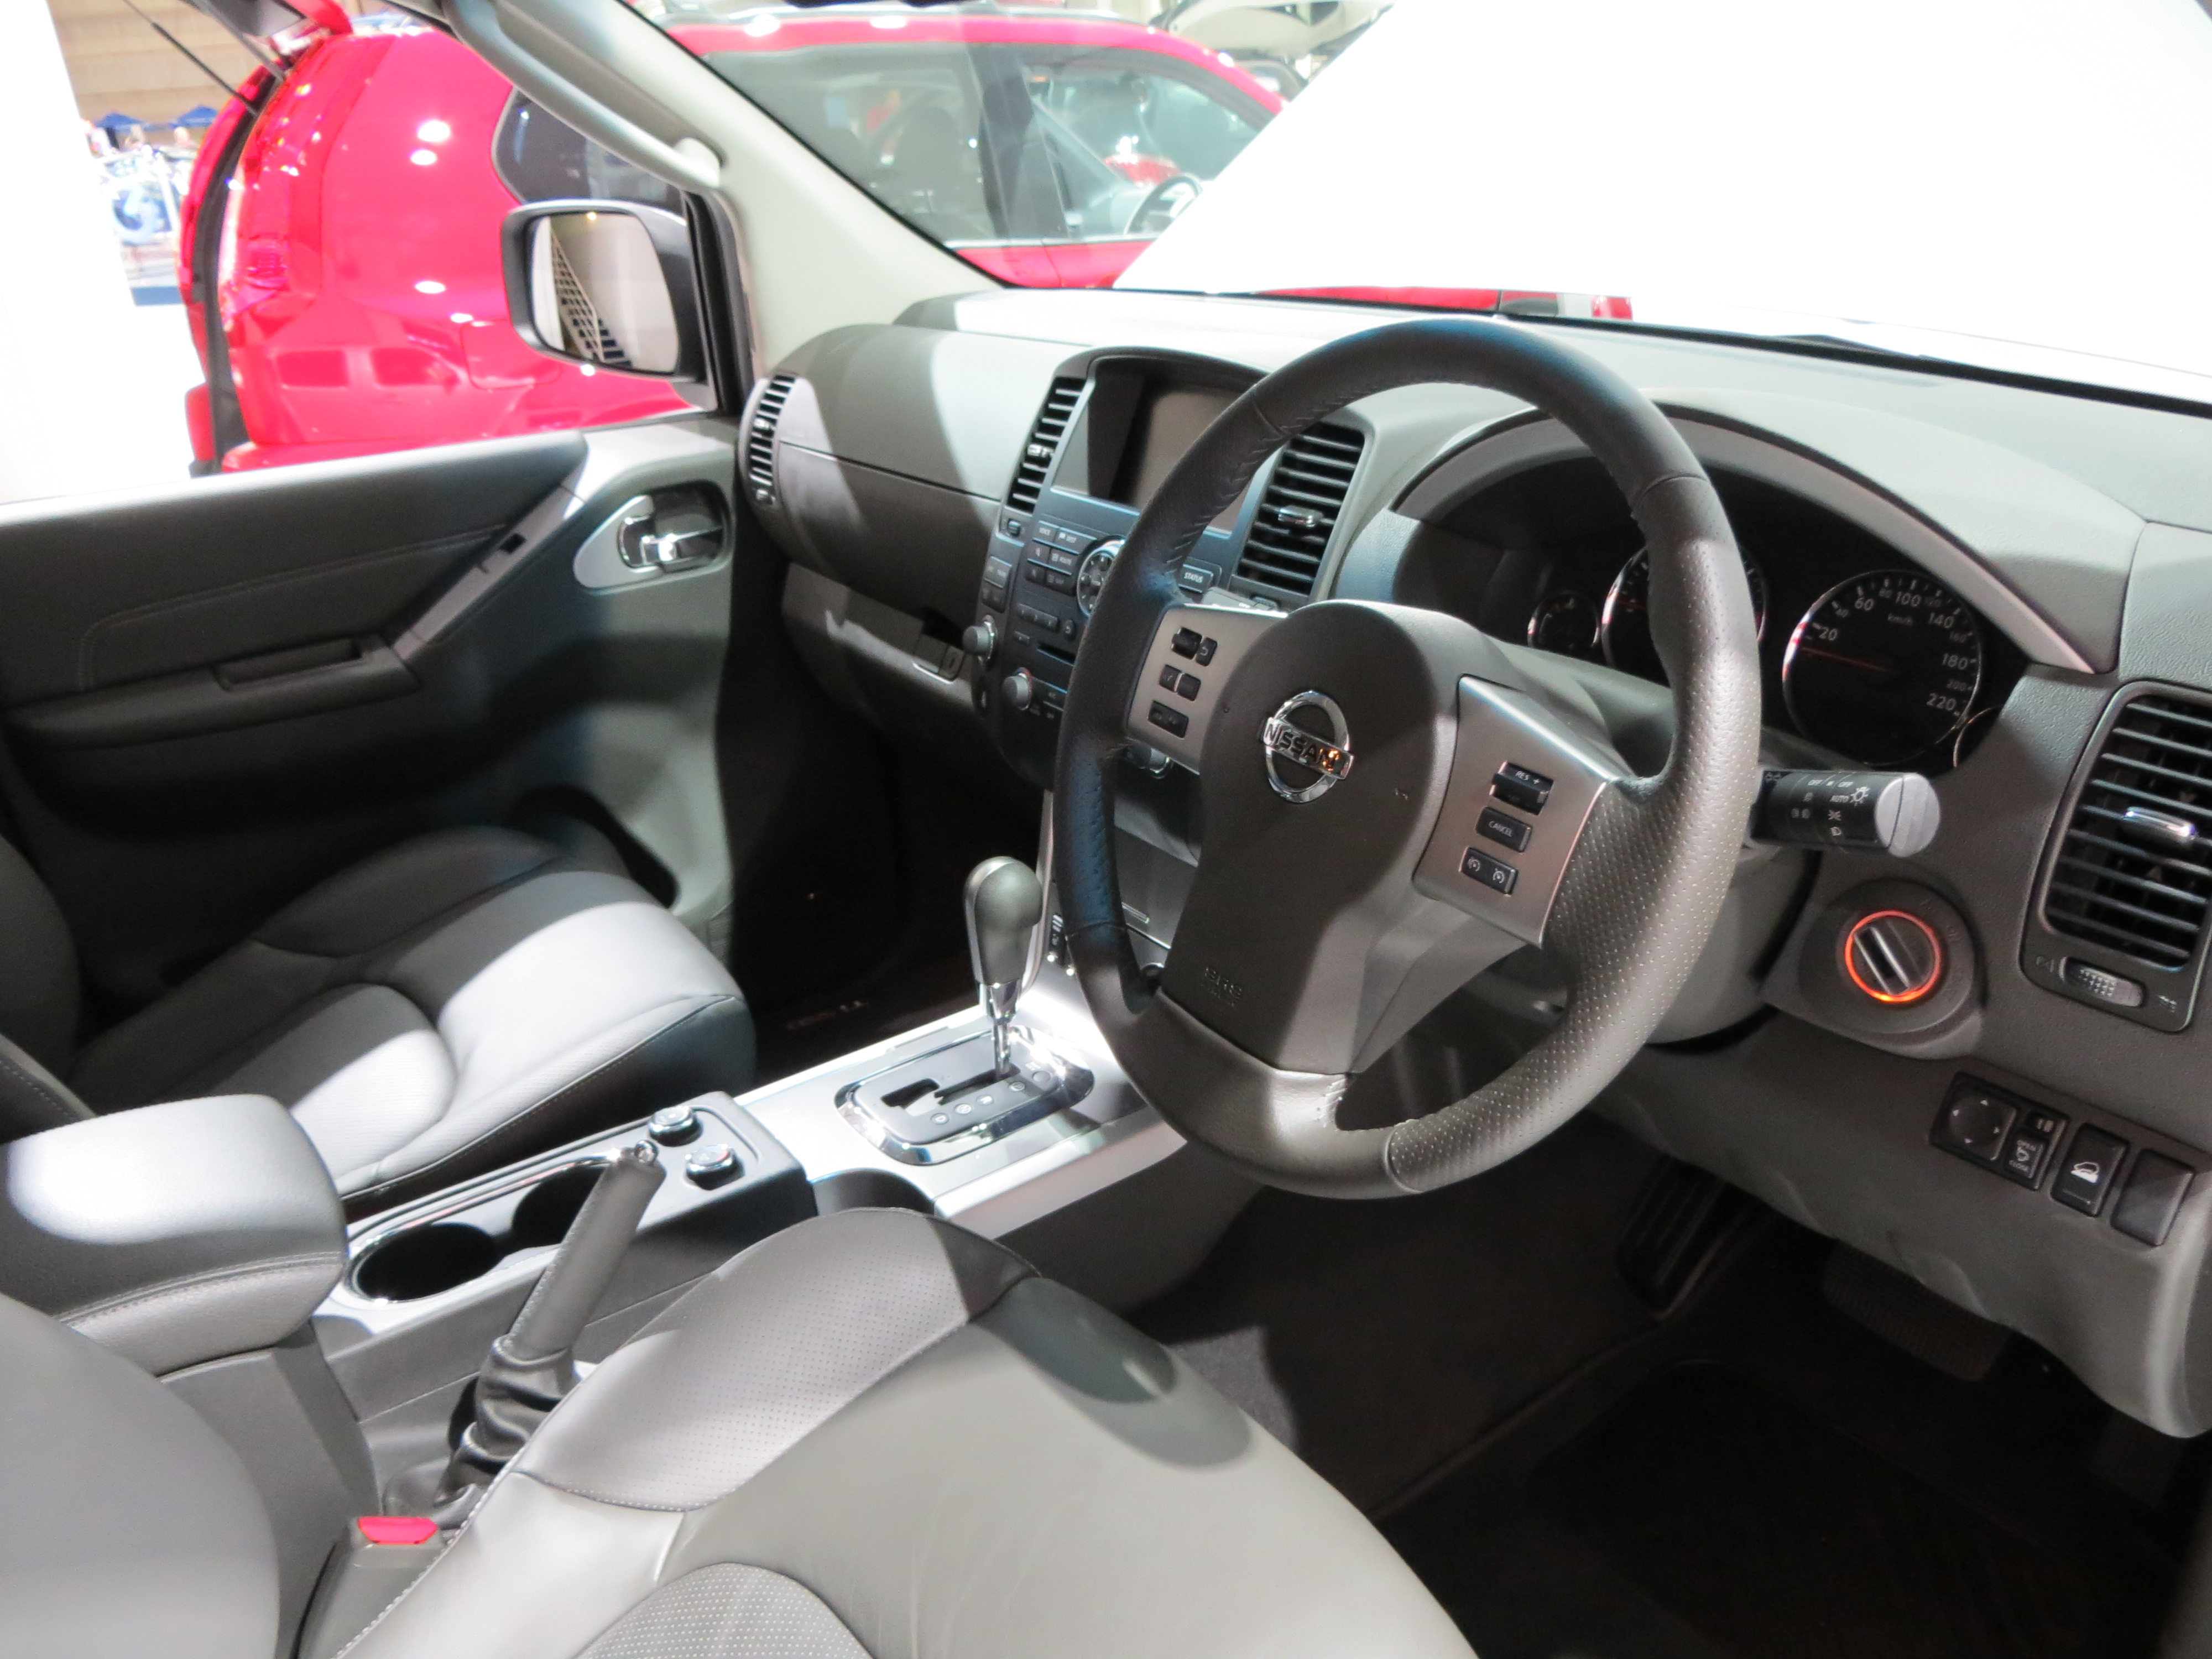 features pathfinder suv price interior reviews s stereo photos nissan controls